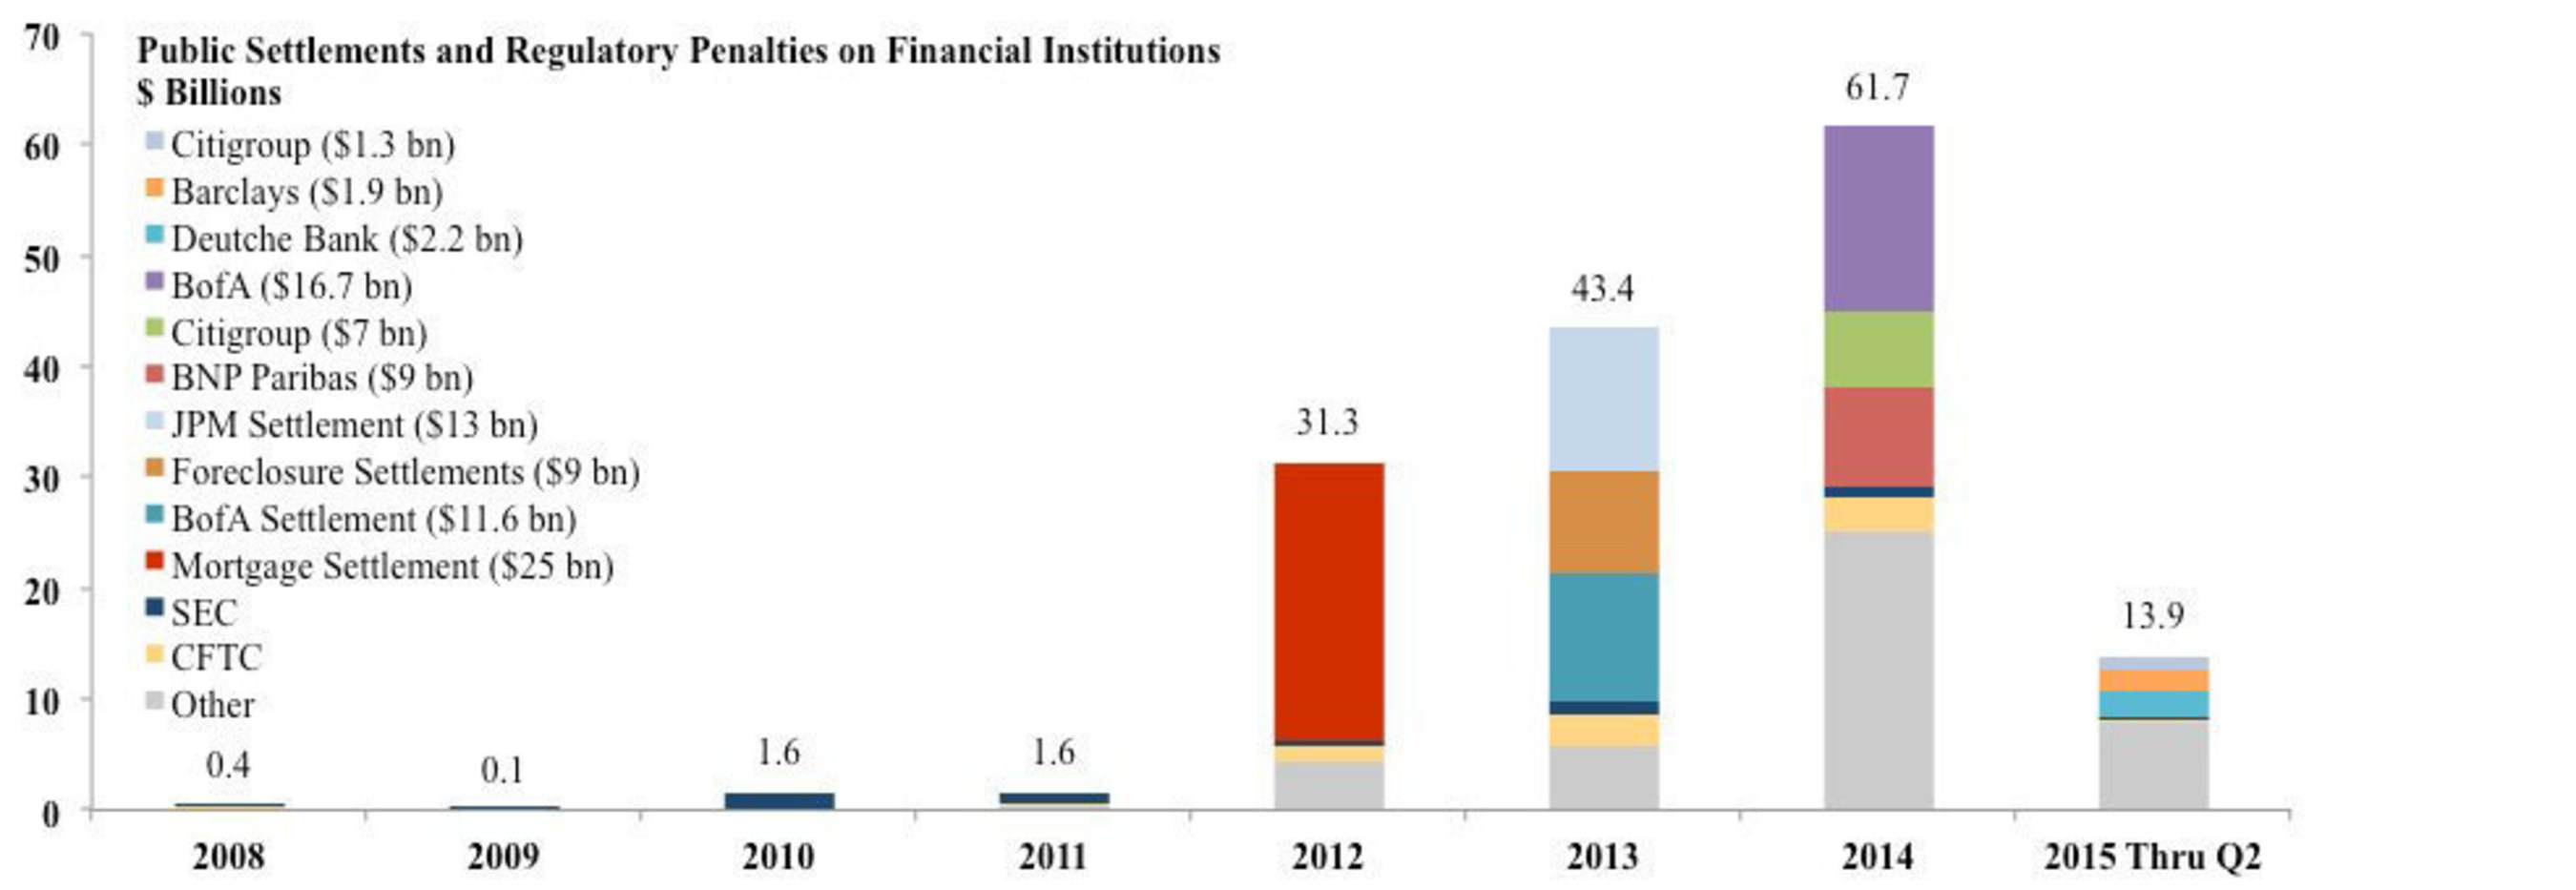 Public Settlements and Regulatory Penalties on Financial Institutions ($ Billions)